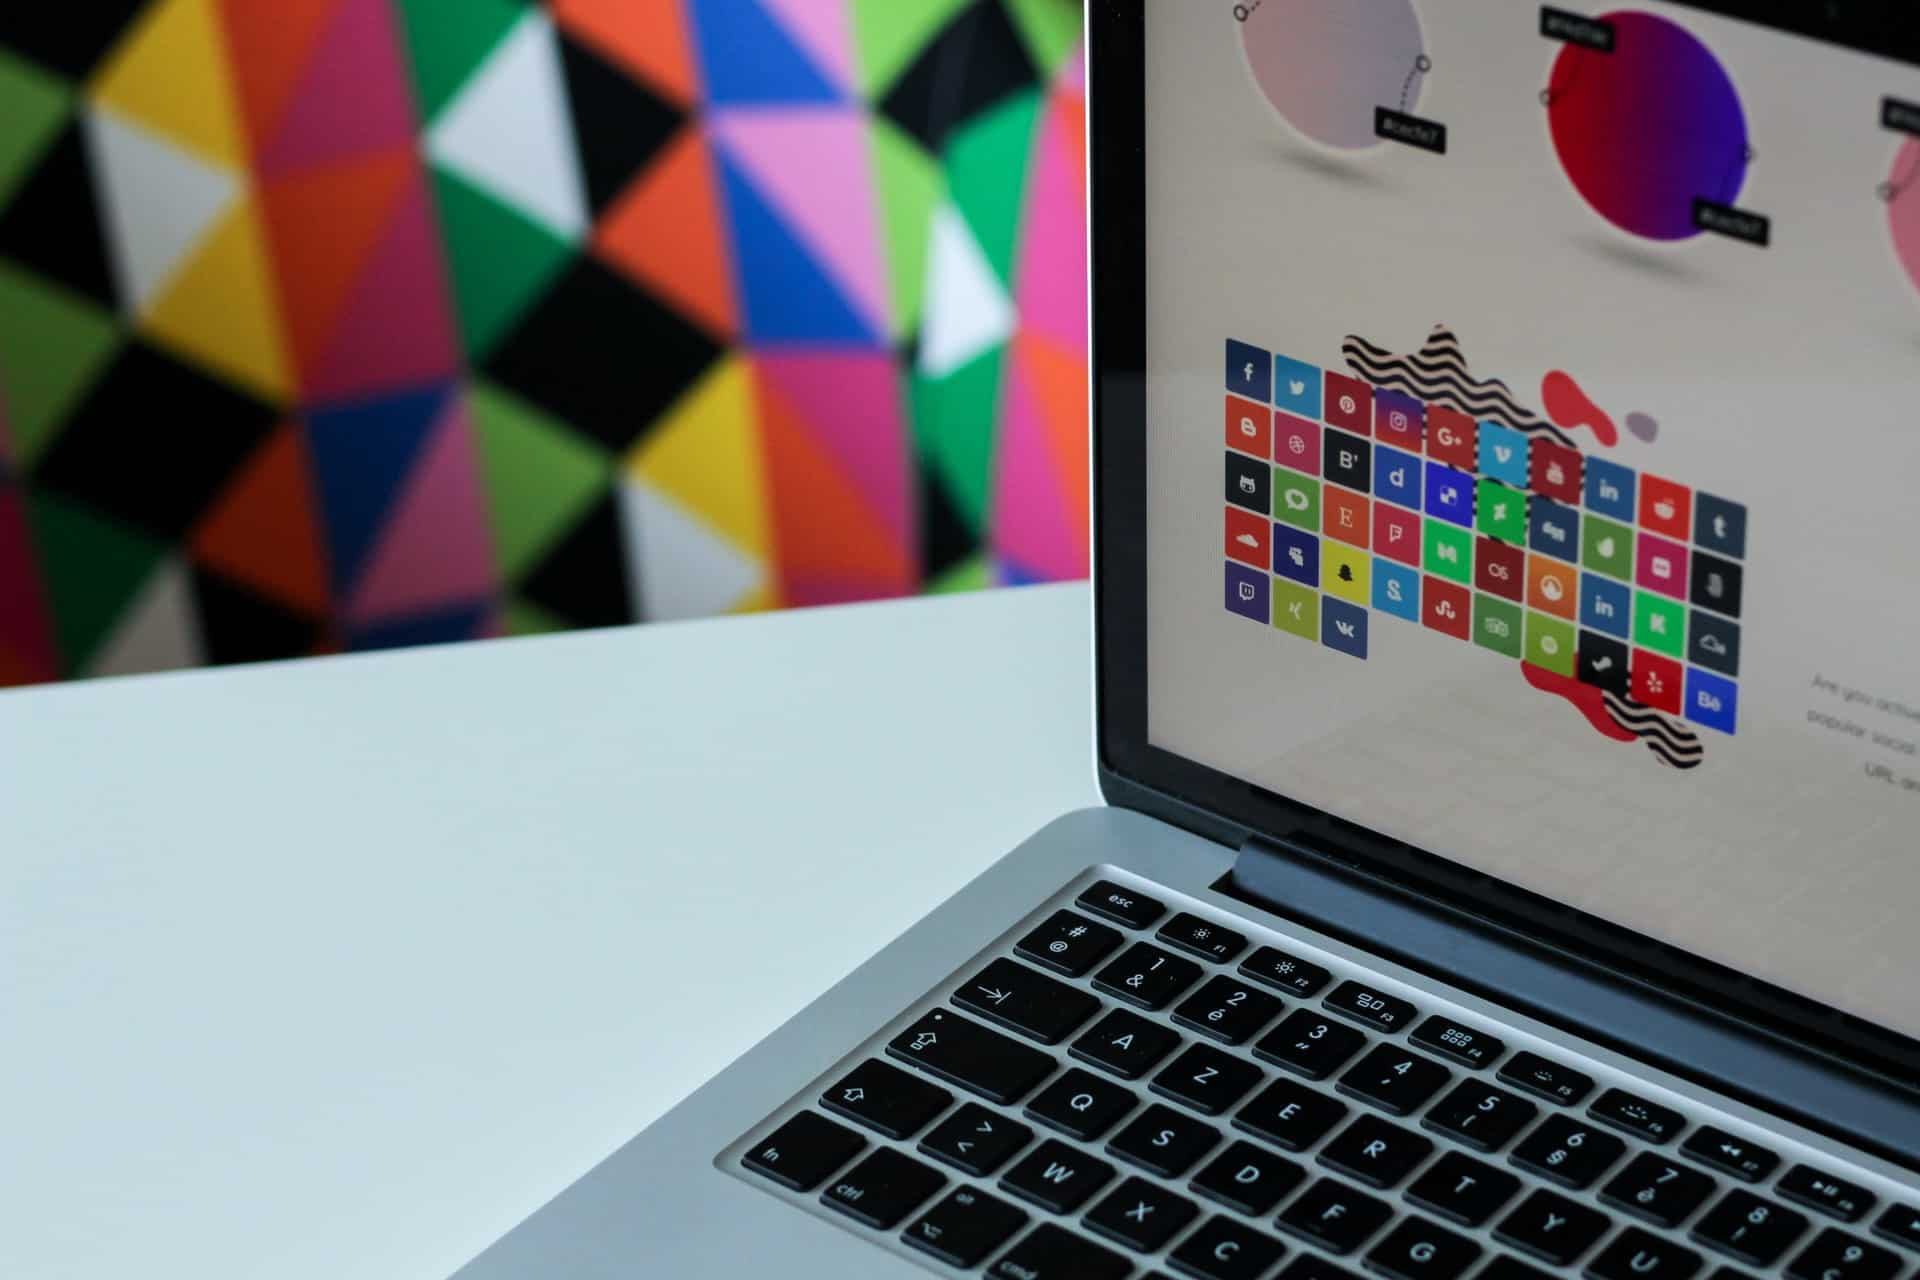 Laptop showing page with colorful design